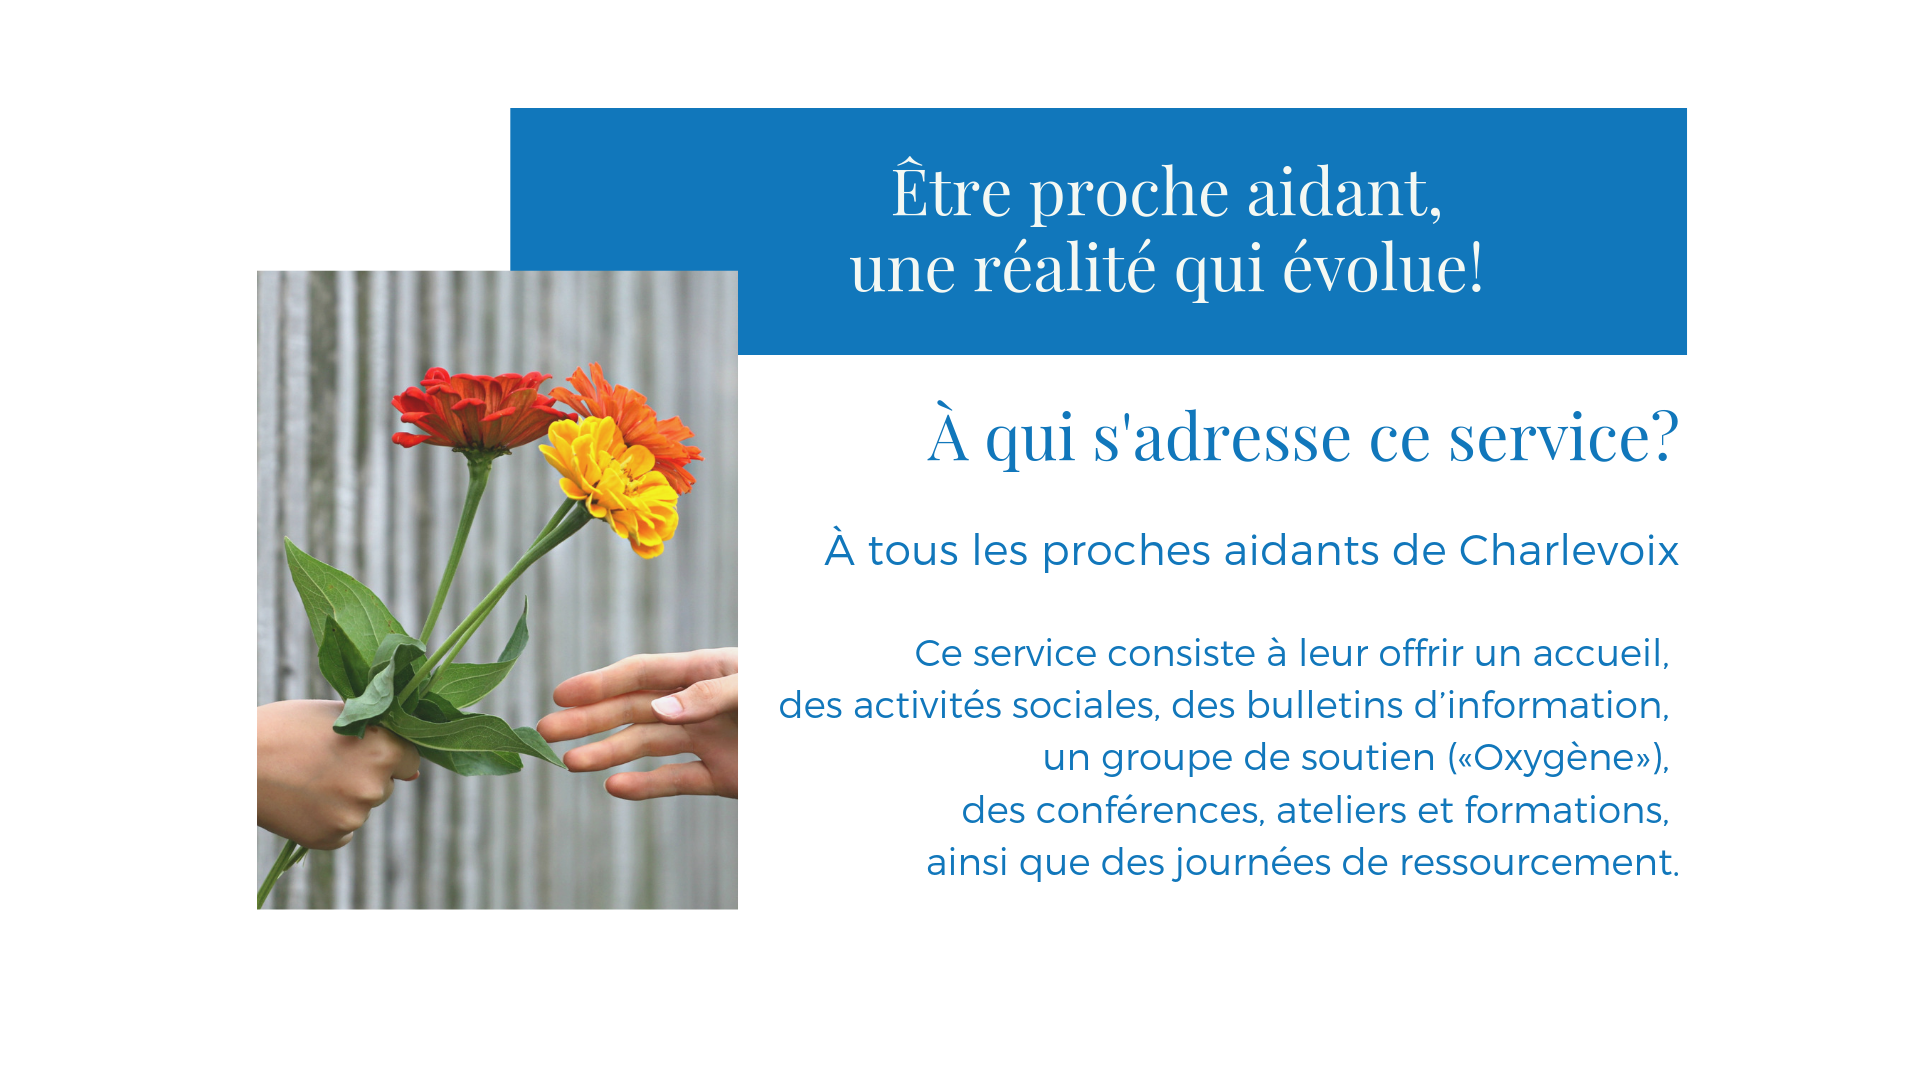 29 proches aidants services oxygene ateliers formation conference